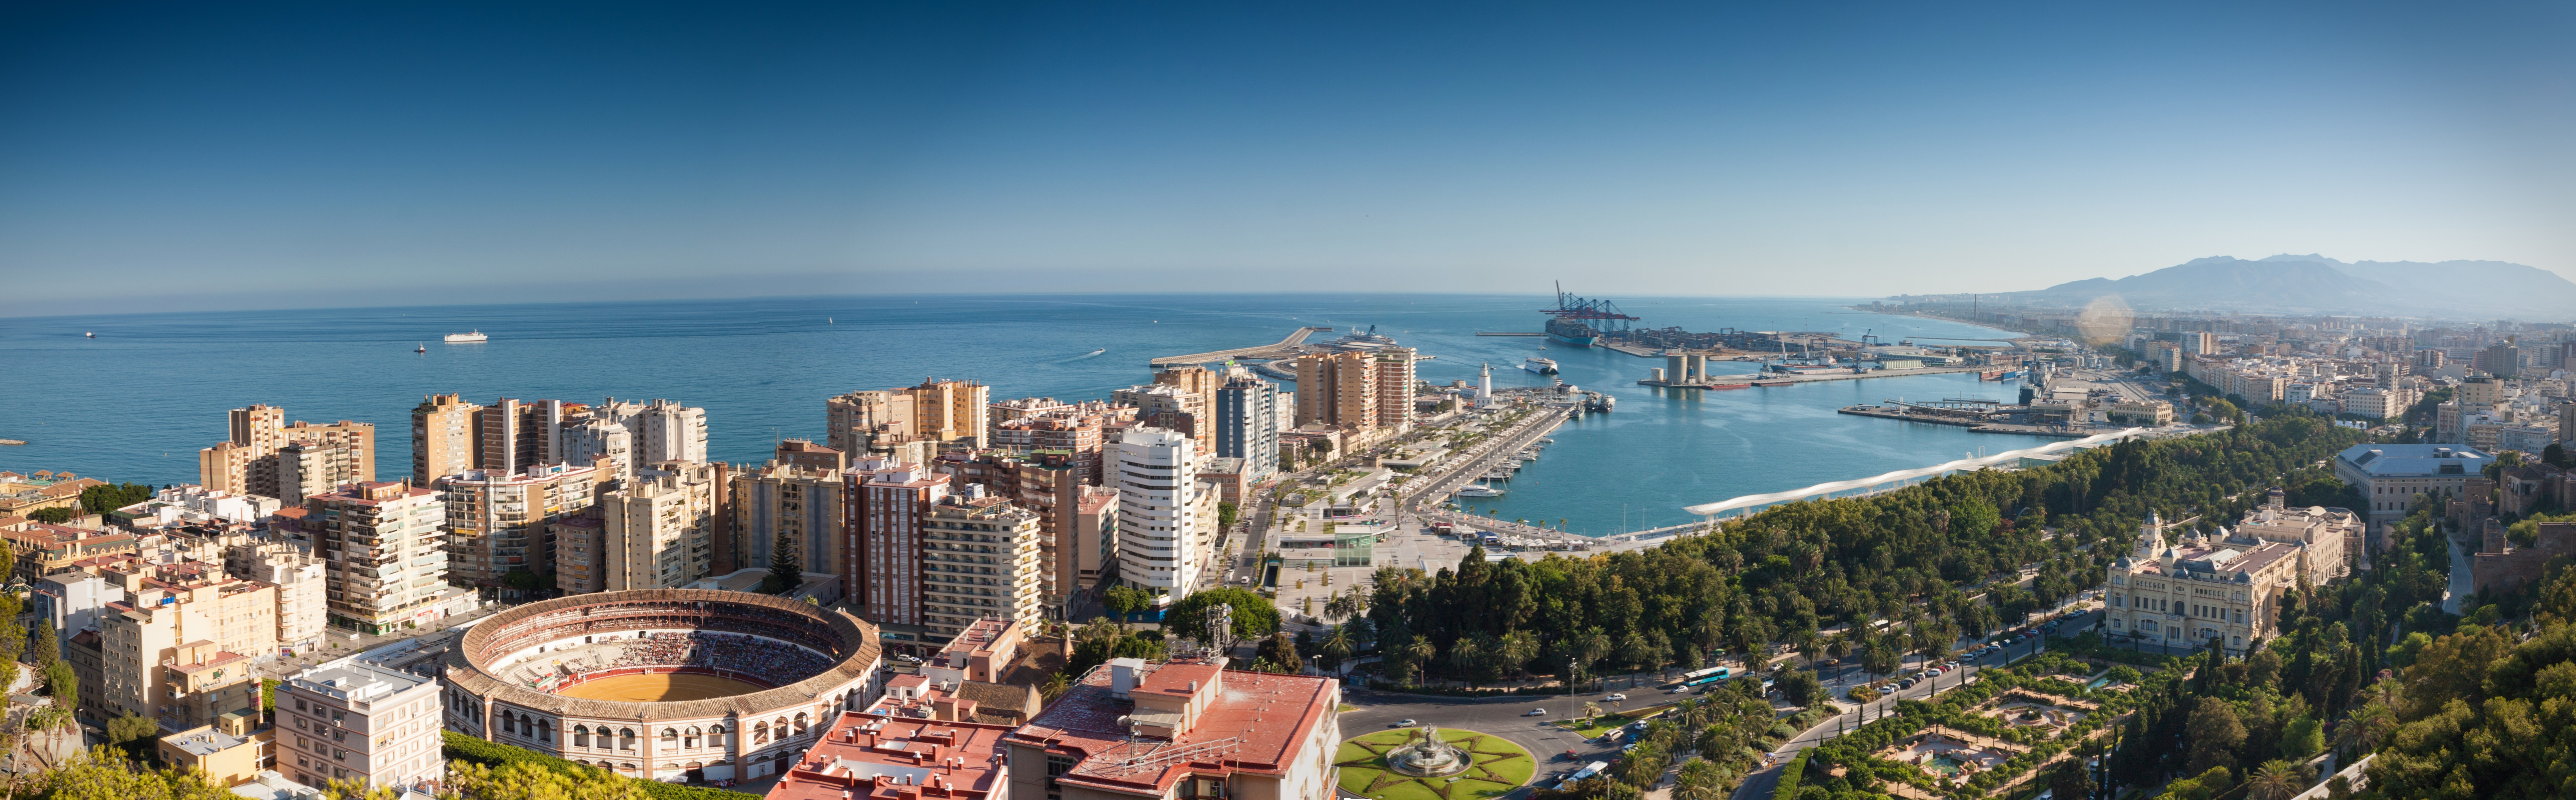 cityscape and landscape in malaga spain image free stock photo public domain photo cc0 images. Black Bedroom Furniture Sets. Home Design Ideas